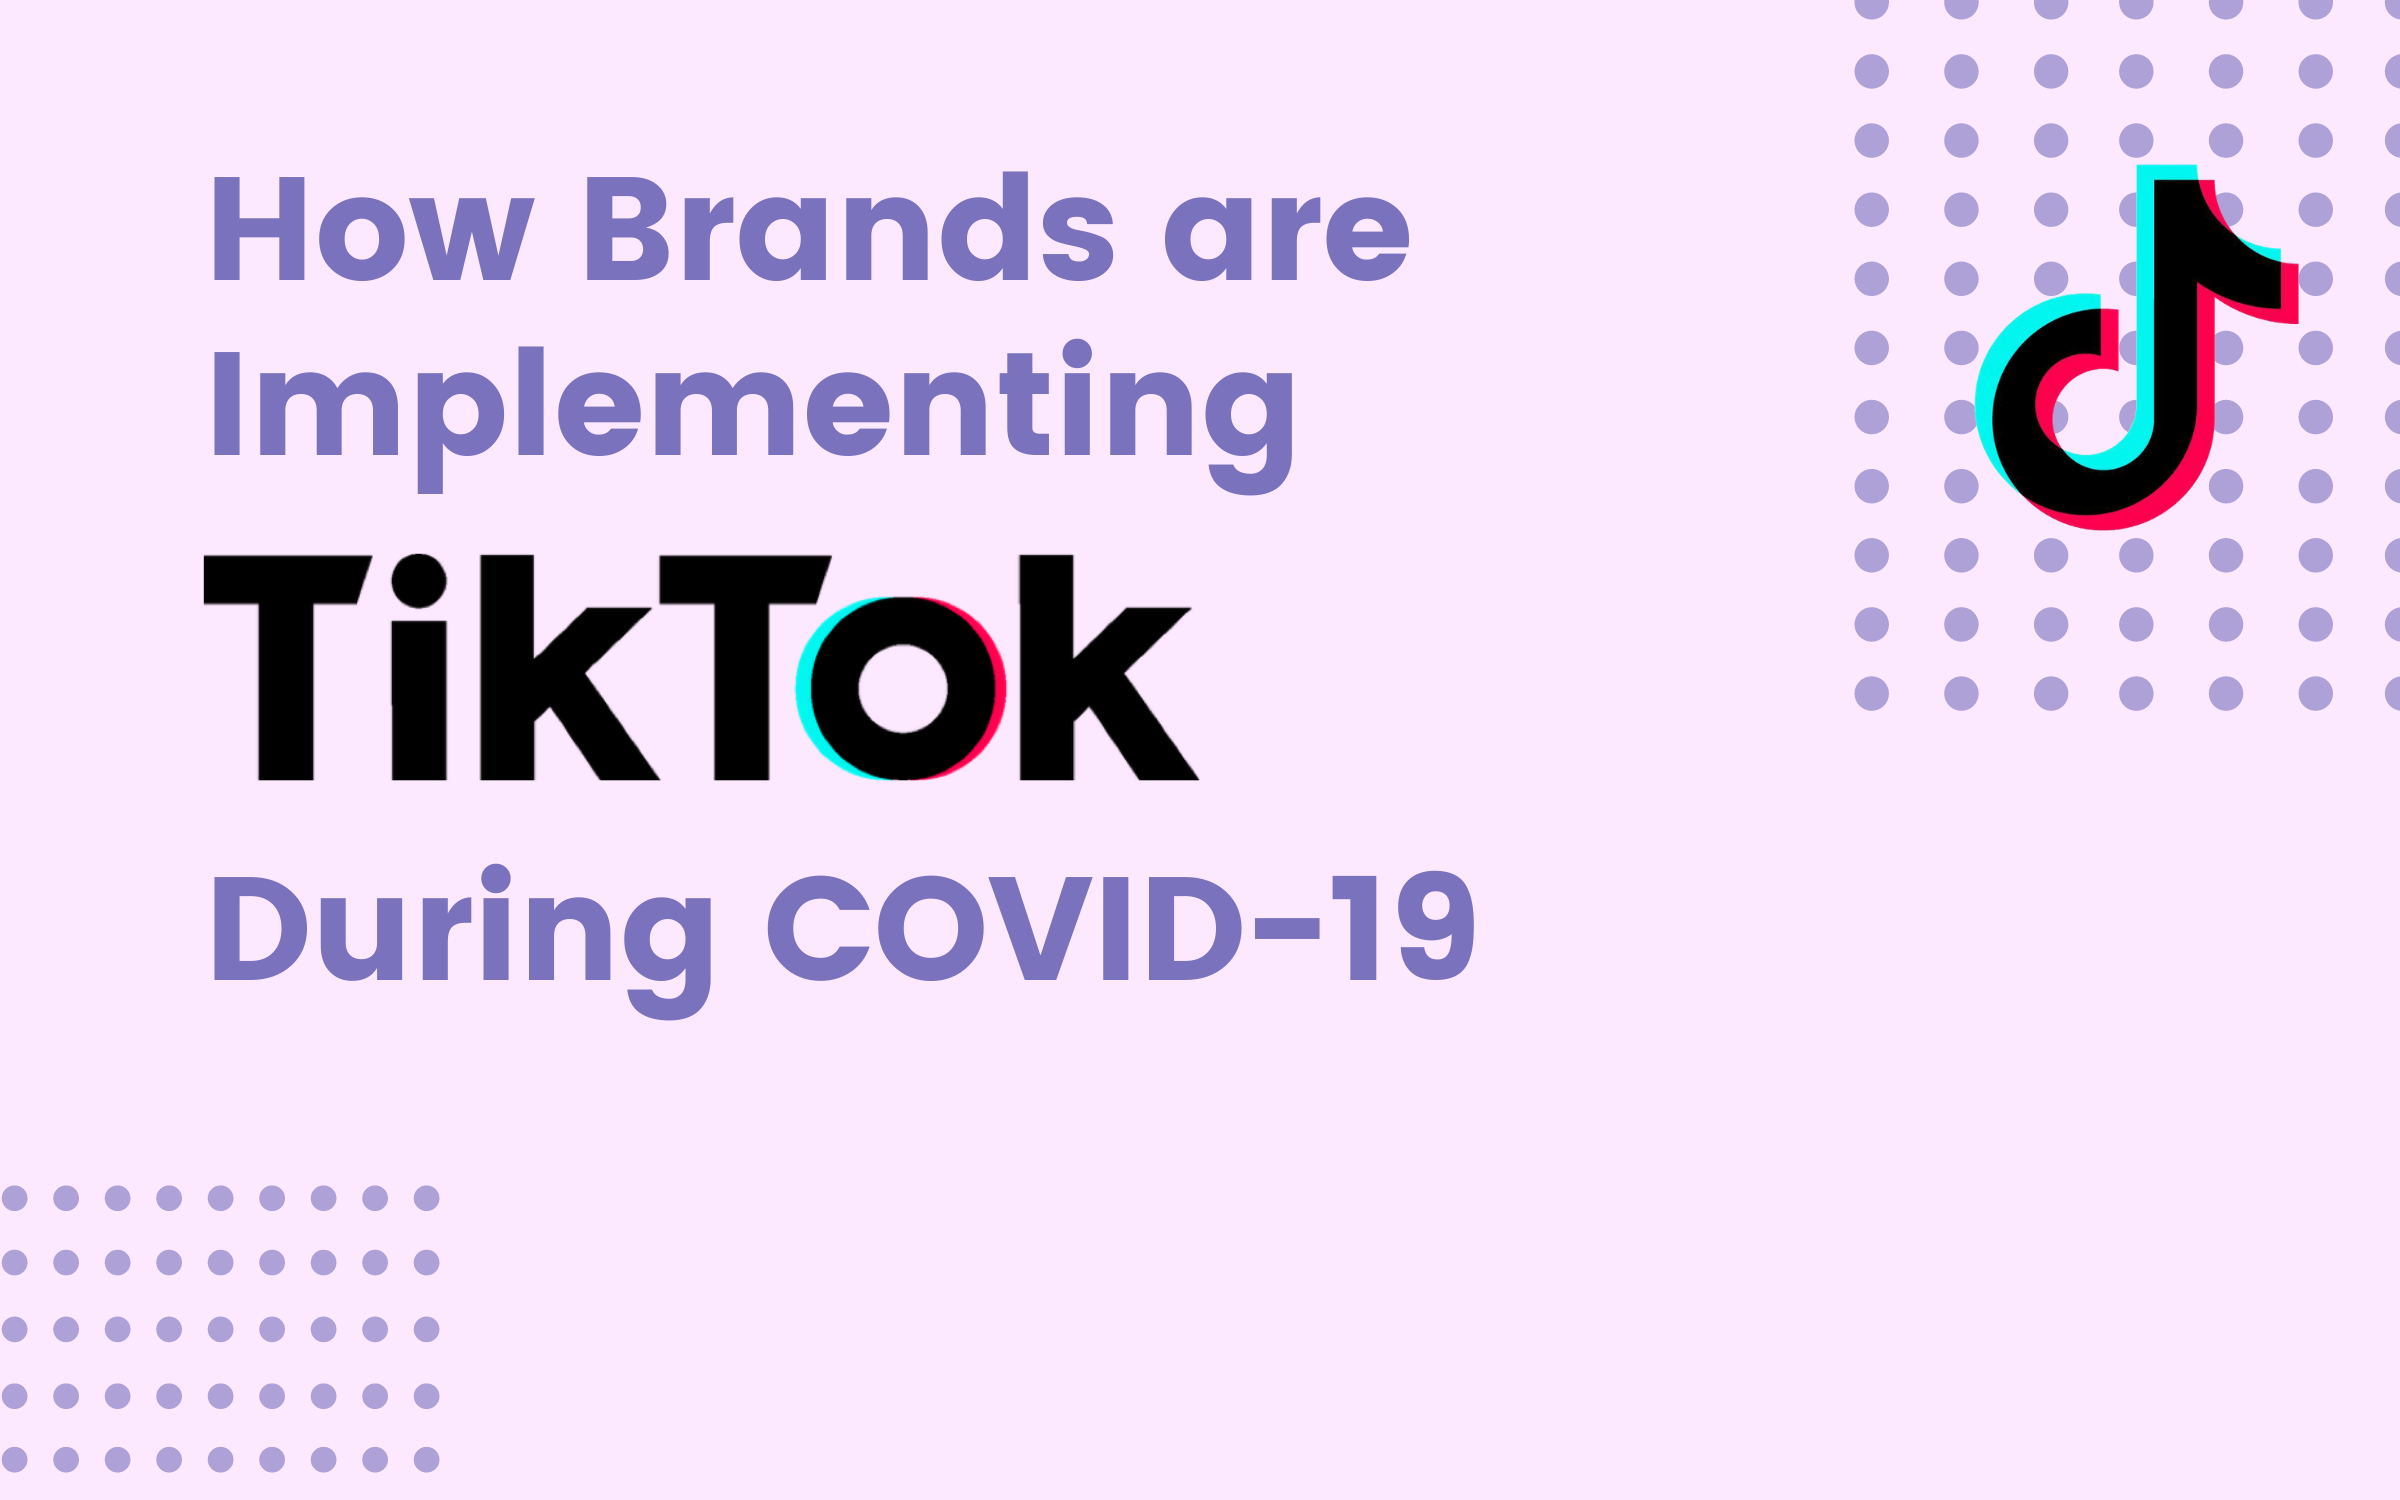 How brands are implementing TikTok during COVID-19